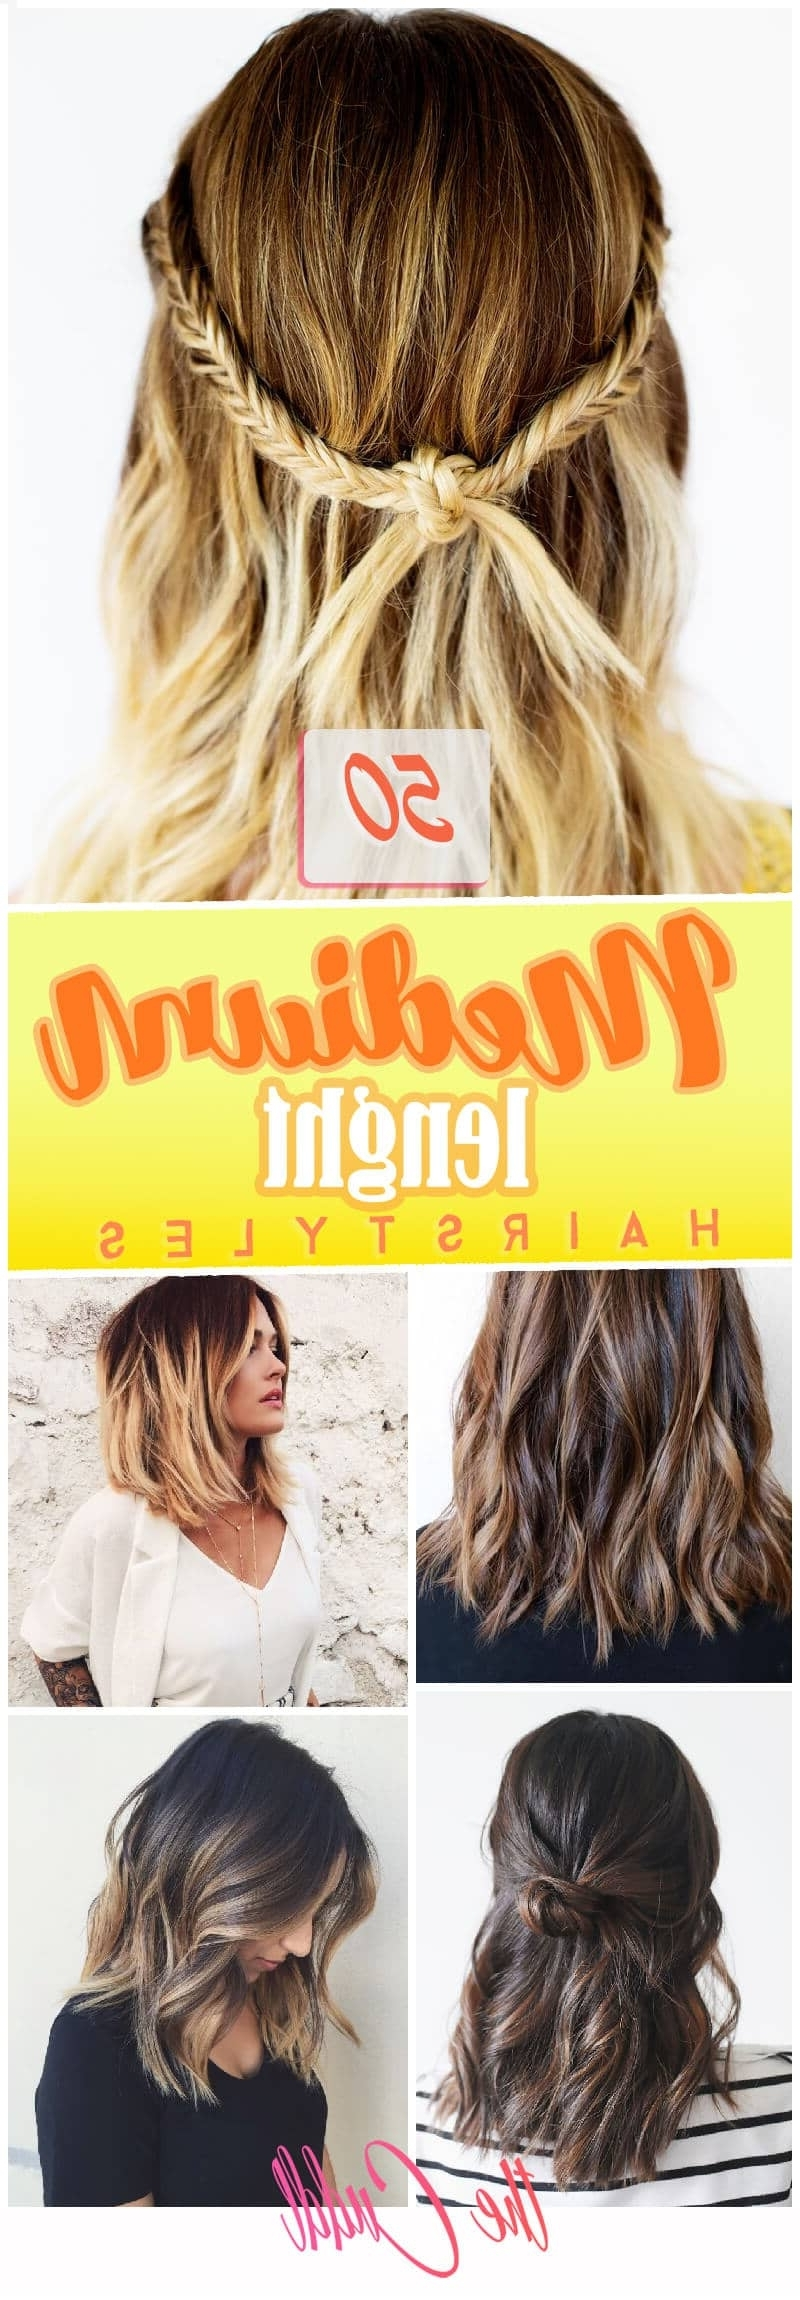 50 Pretty Chic Medium Lenght Hairstyles For 2020 30+ Amazing Fashionable Hairstyles For Medium Length Hair